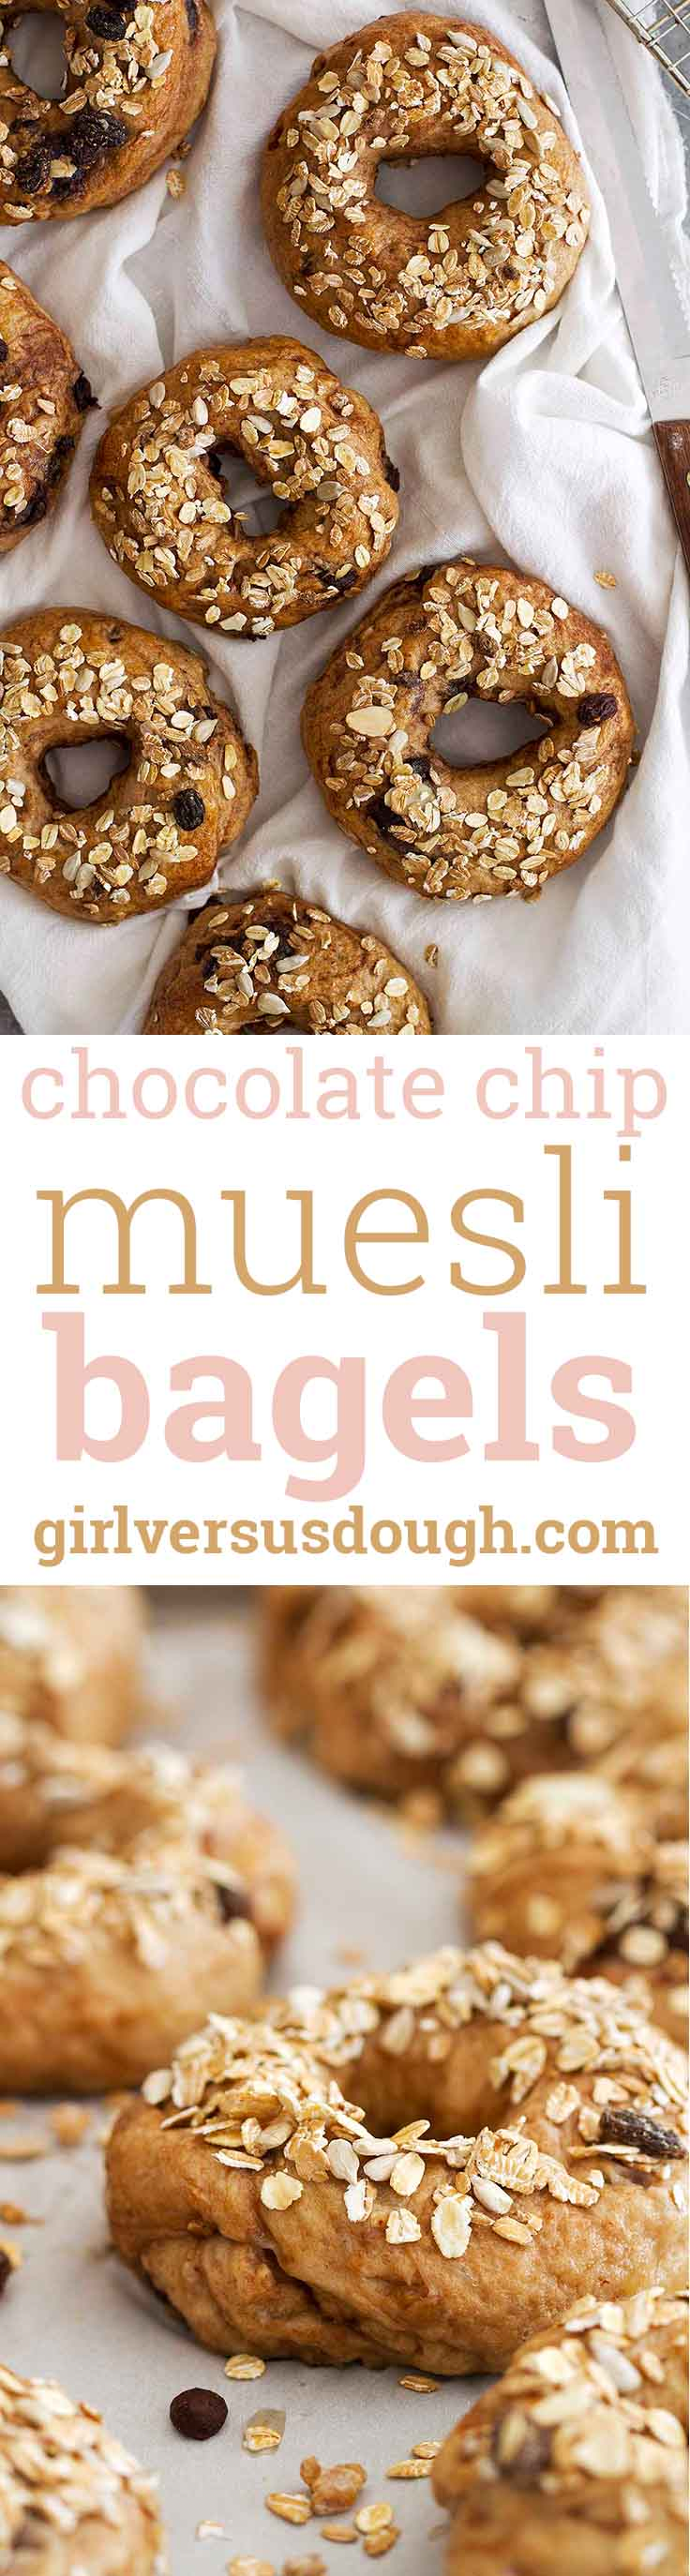 Chocolate Chip Muesli Bagels -- chewy homemade bagels baked with chocolate, muesli and whole wheat flour. A delicious and satisfying breakfast! girlversusdough.com @girlversusdough